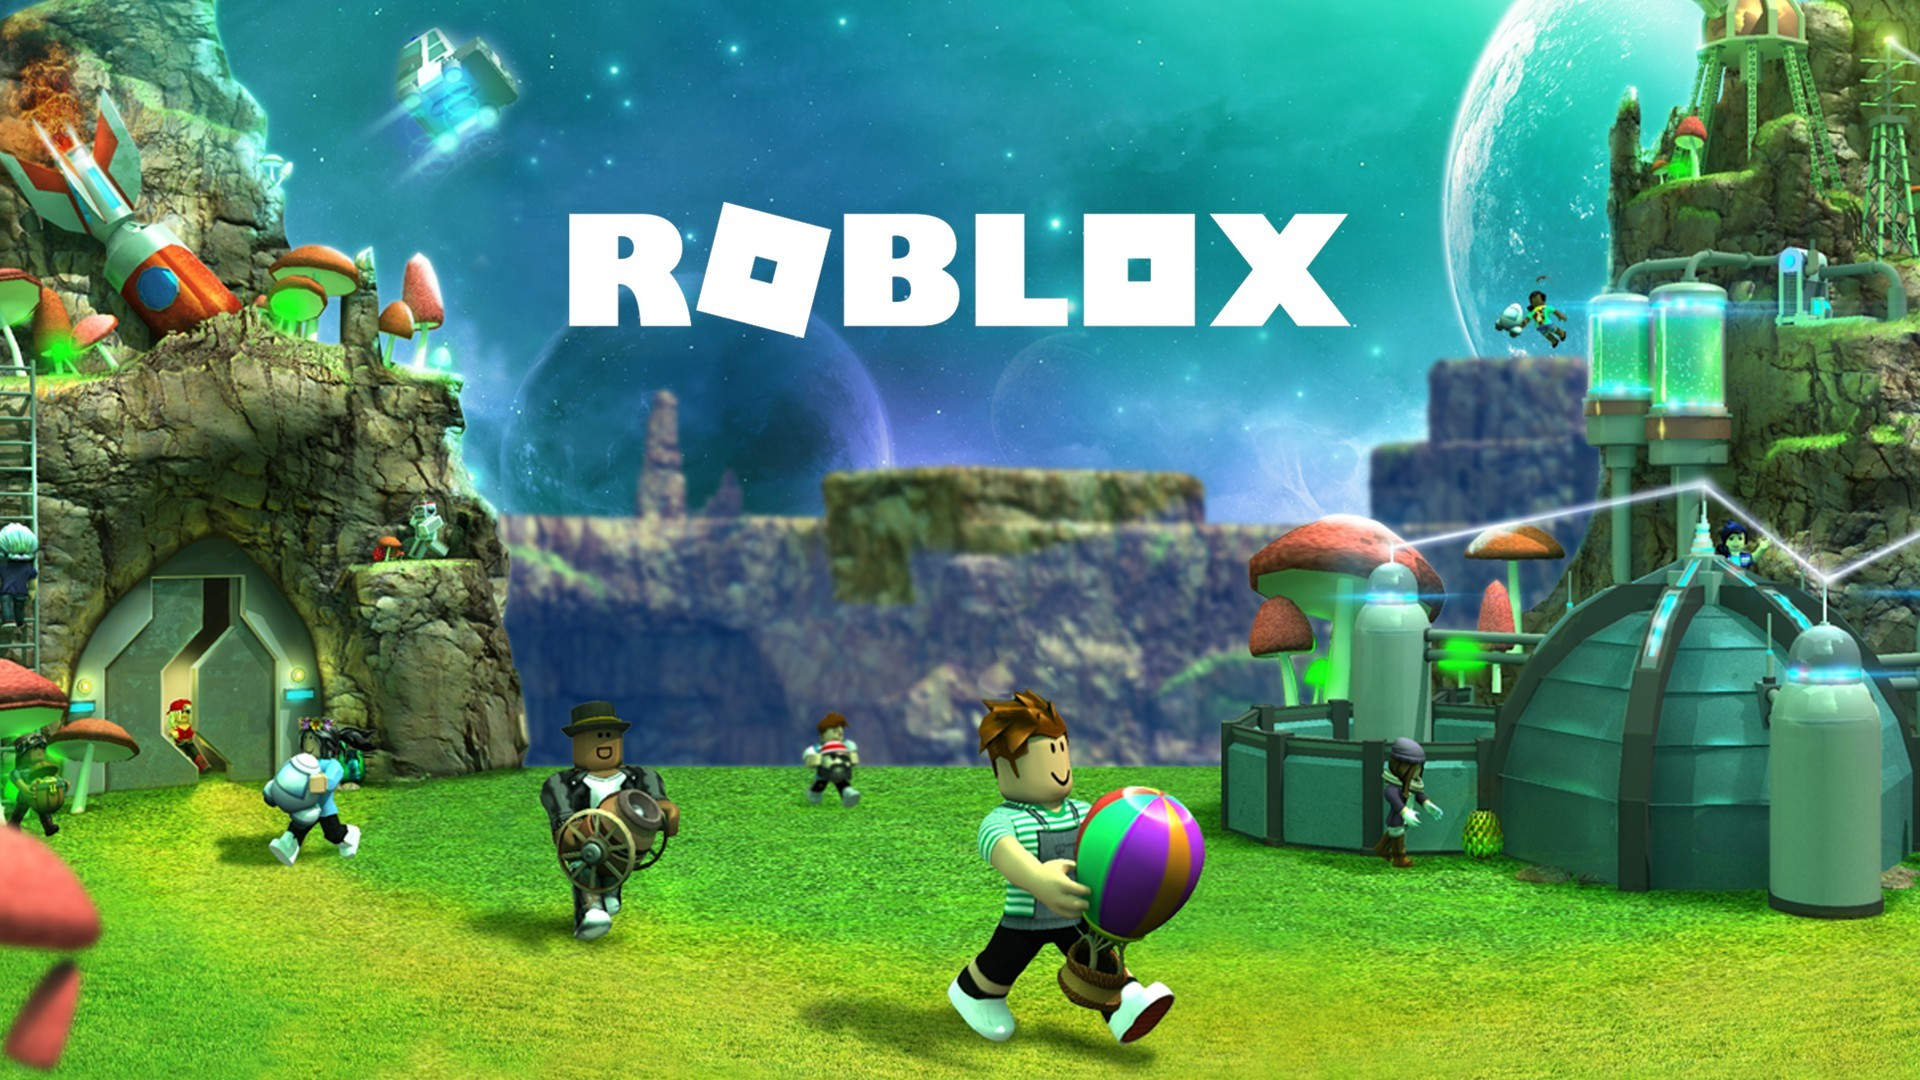 Free Cool Roblox Games Chrome Extension Hd Wallpaper Theme Tab For Chrome Browser